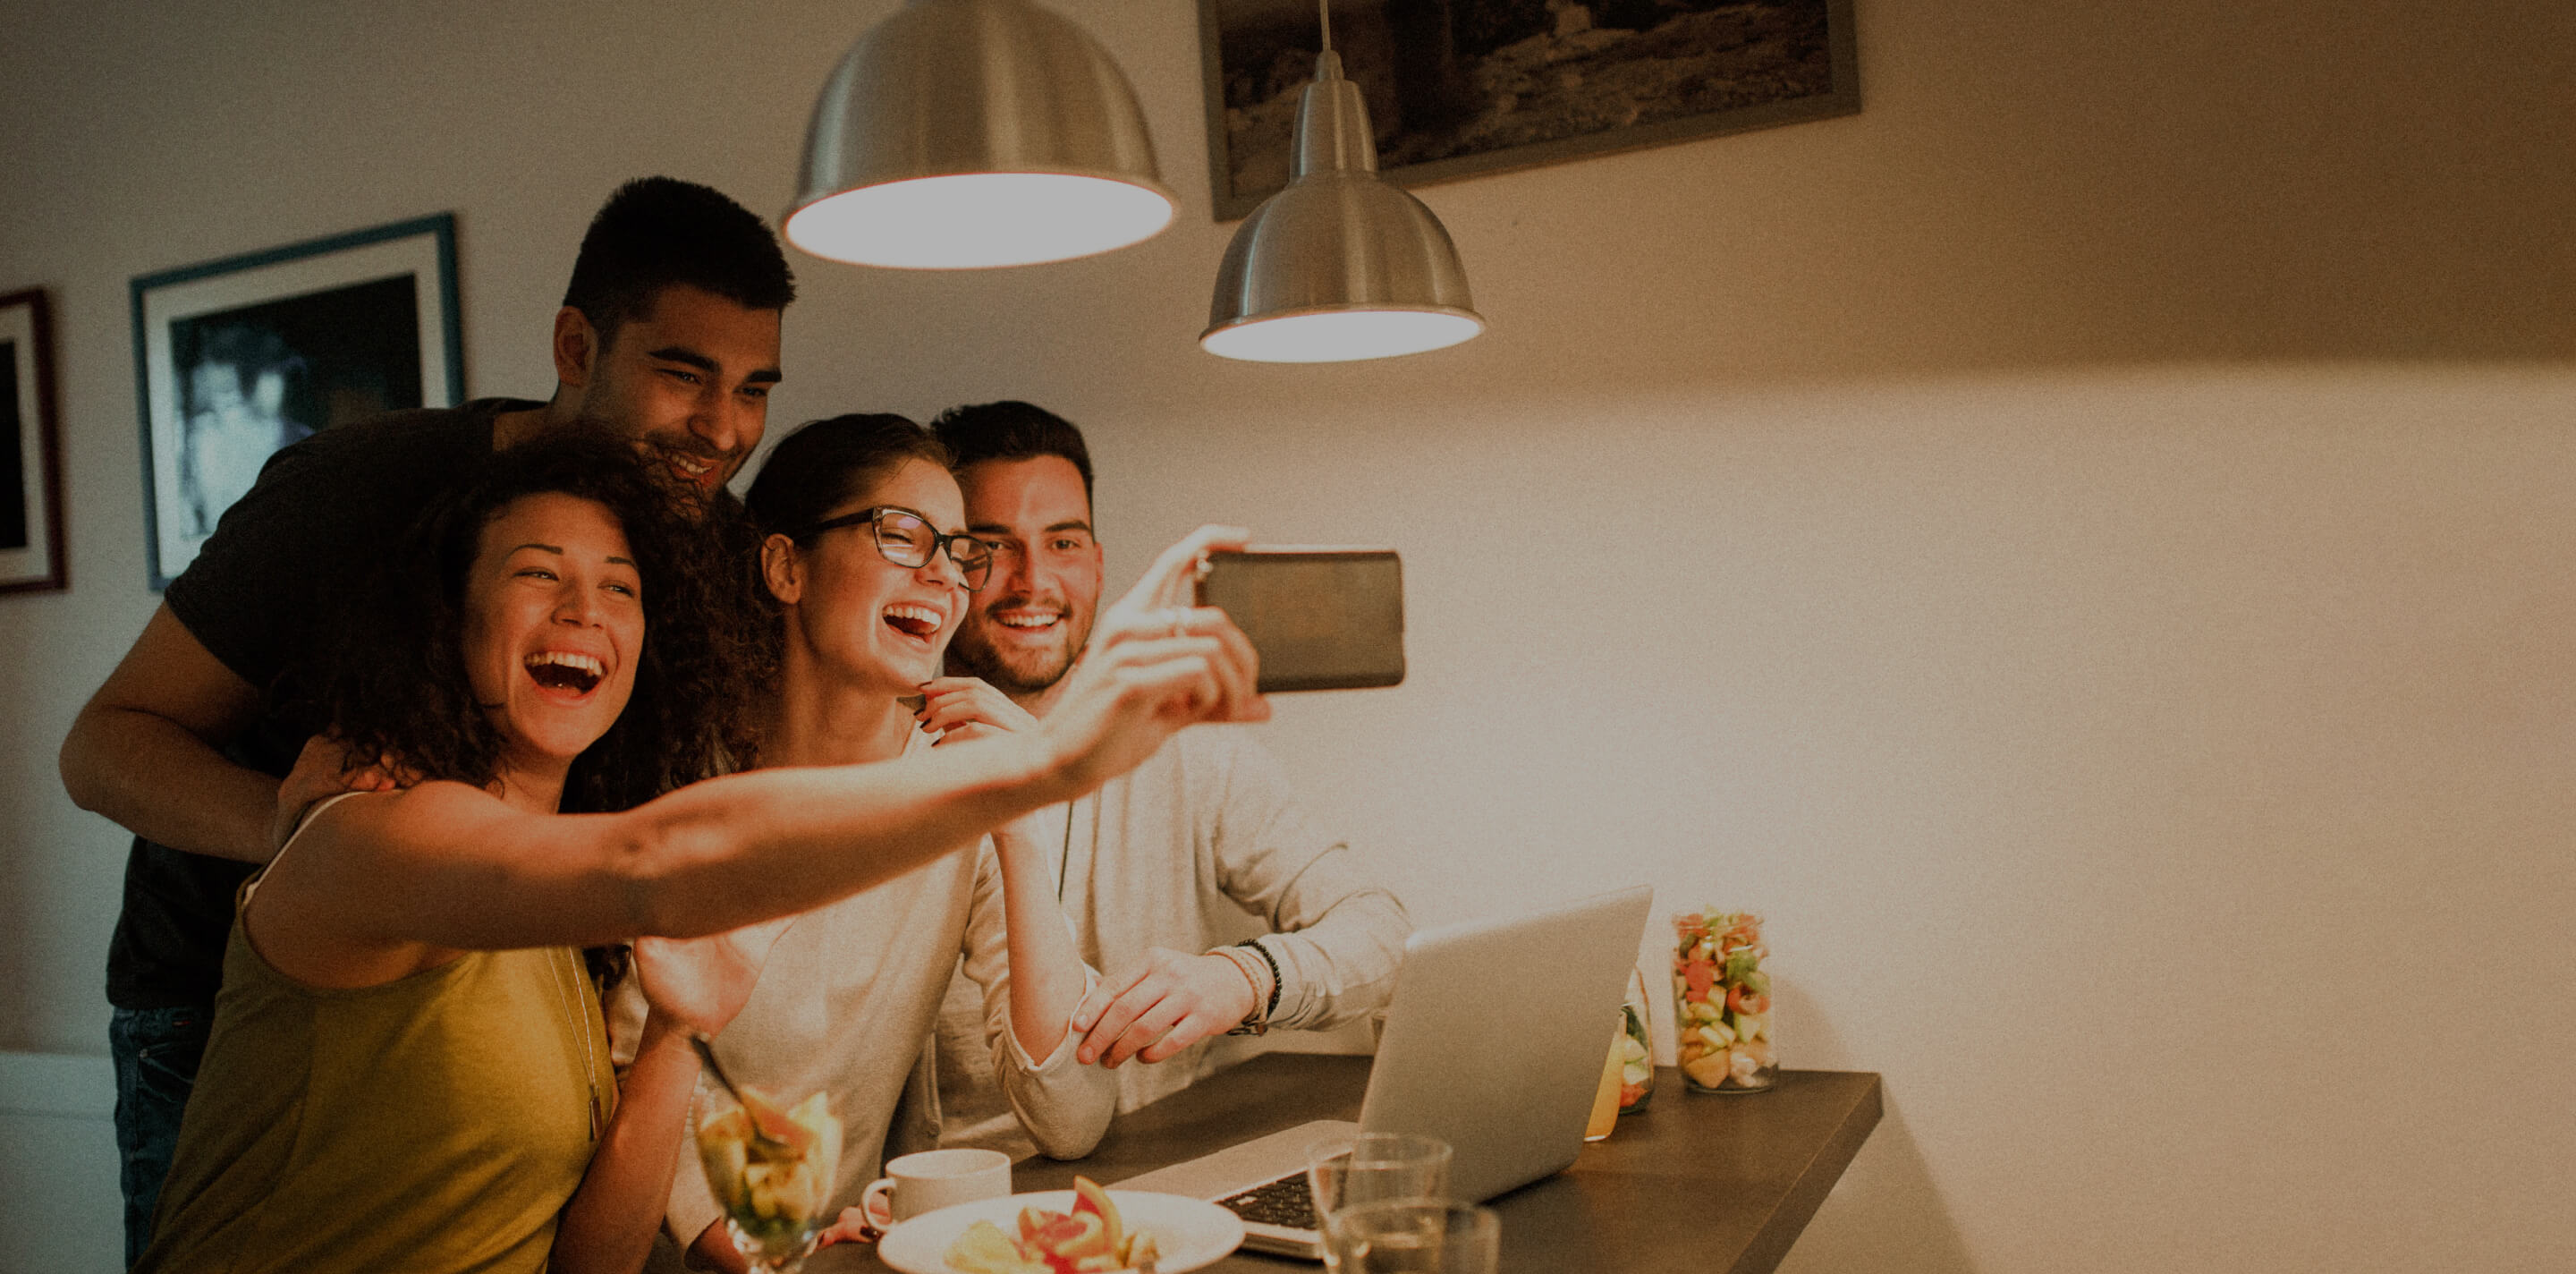 group of friends are taking on selfie in the kitchen